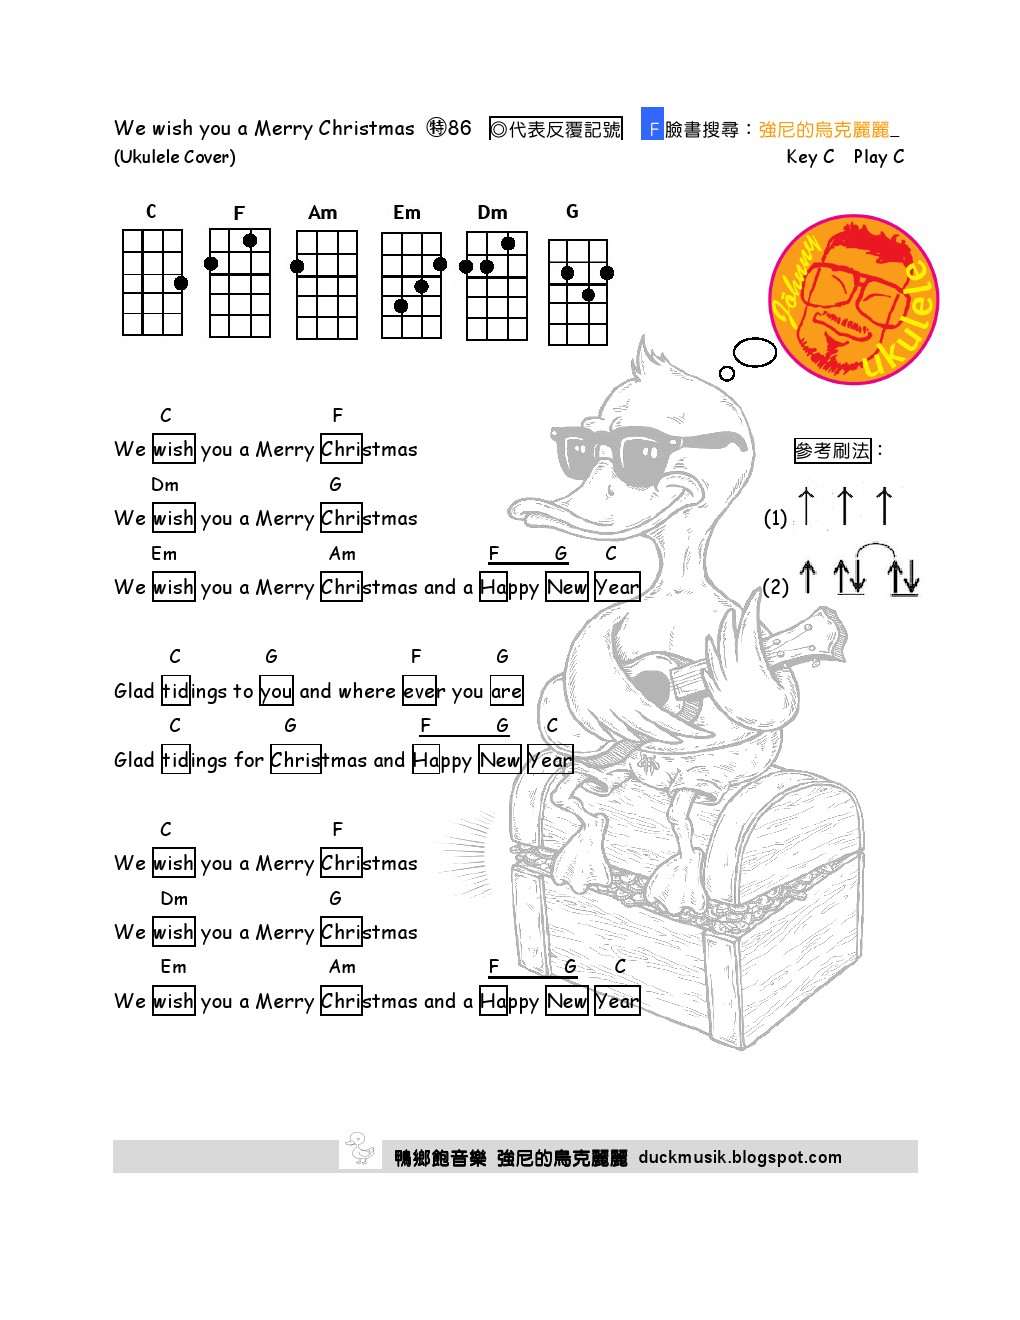 Magnificent Merry Christmas Ukulele Chords Ornament Beginner